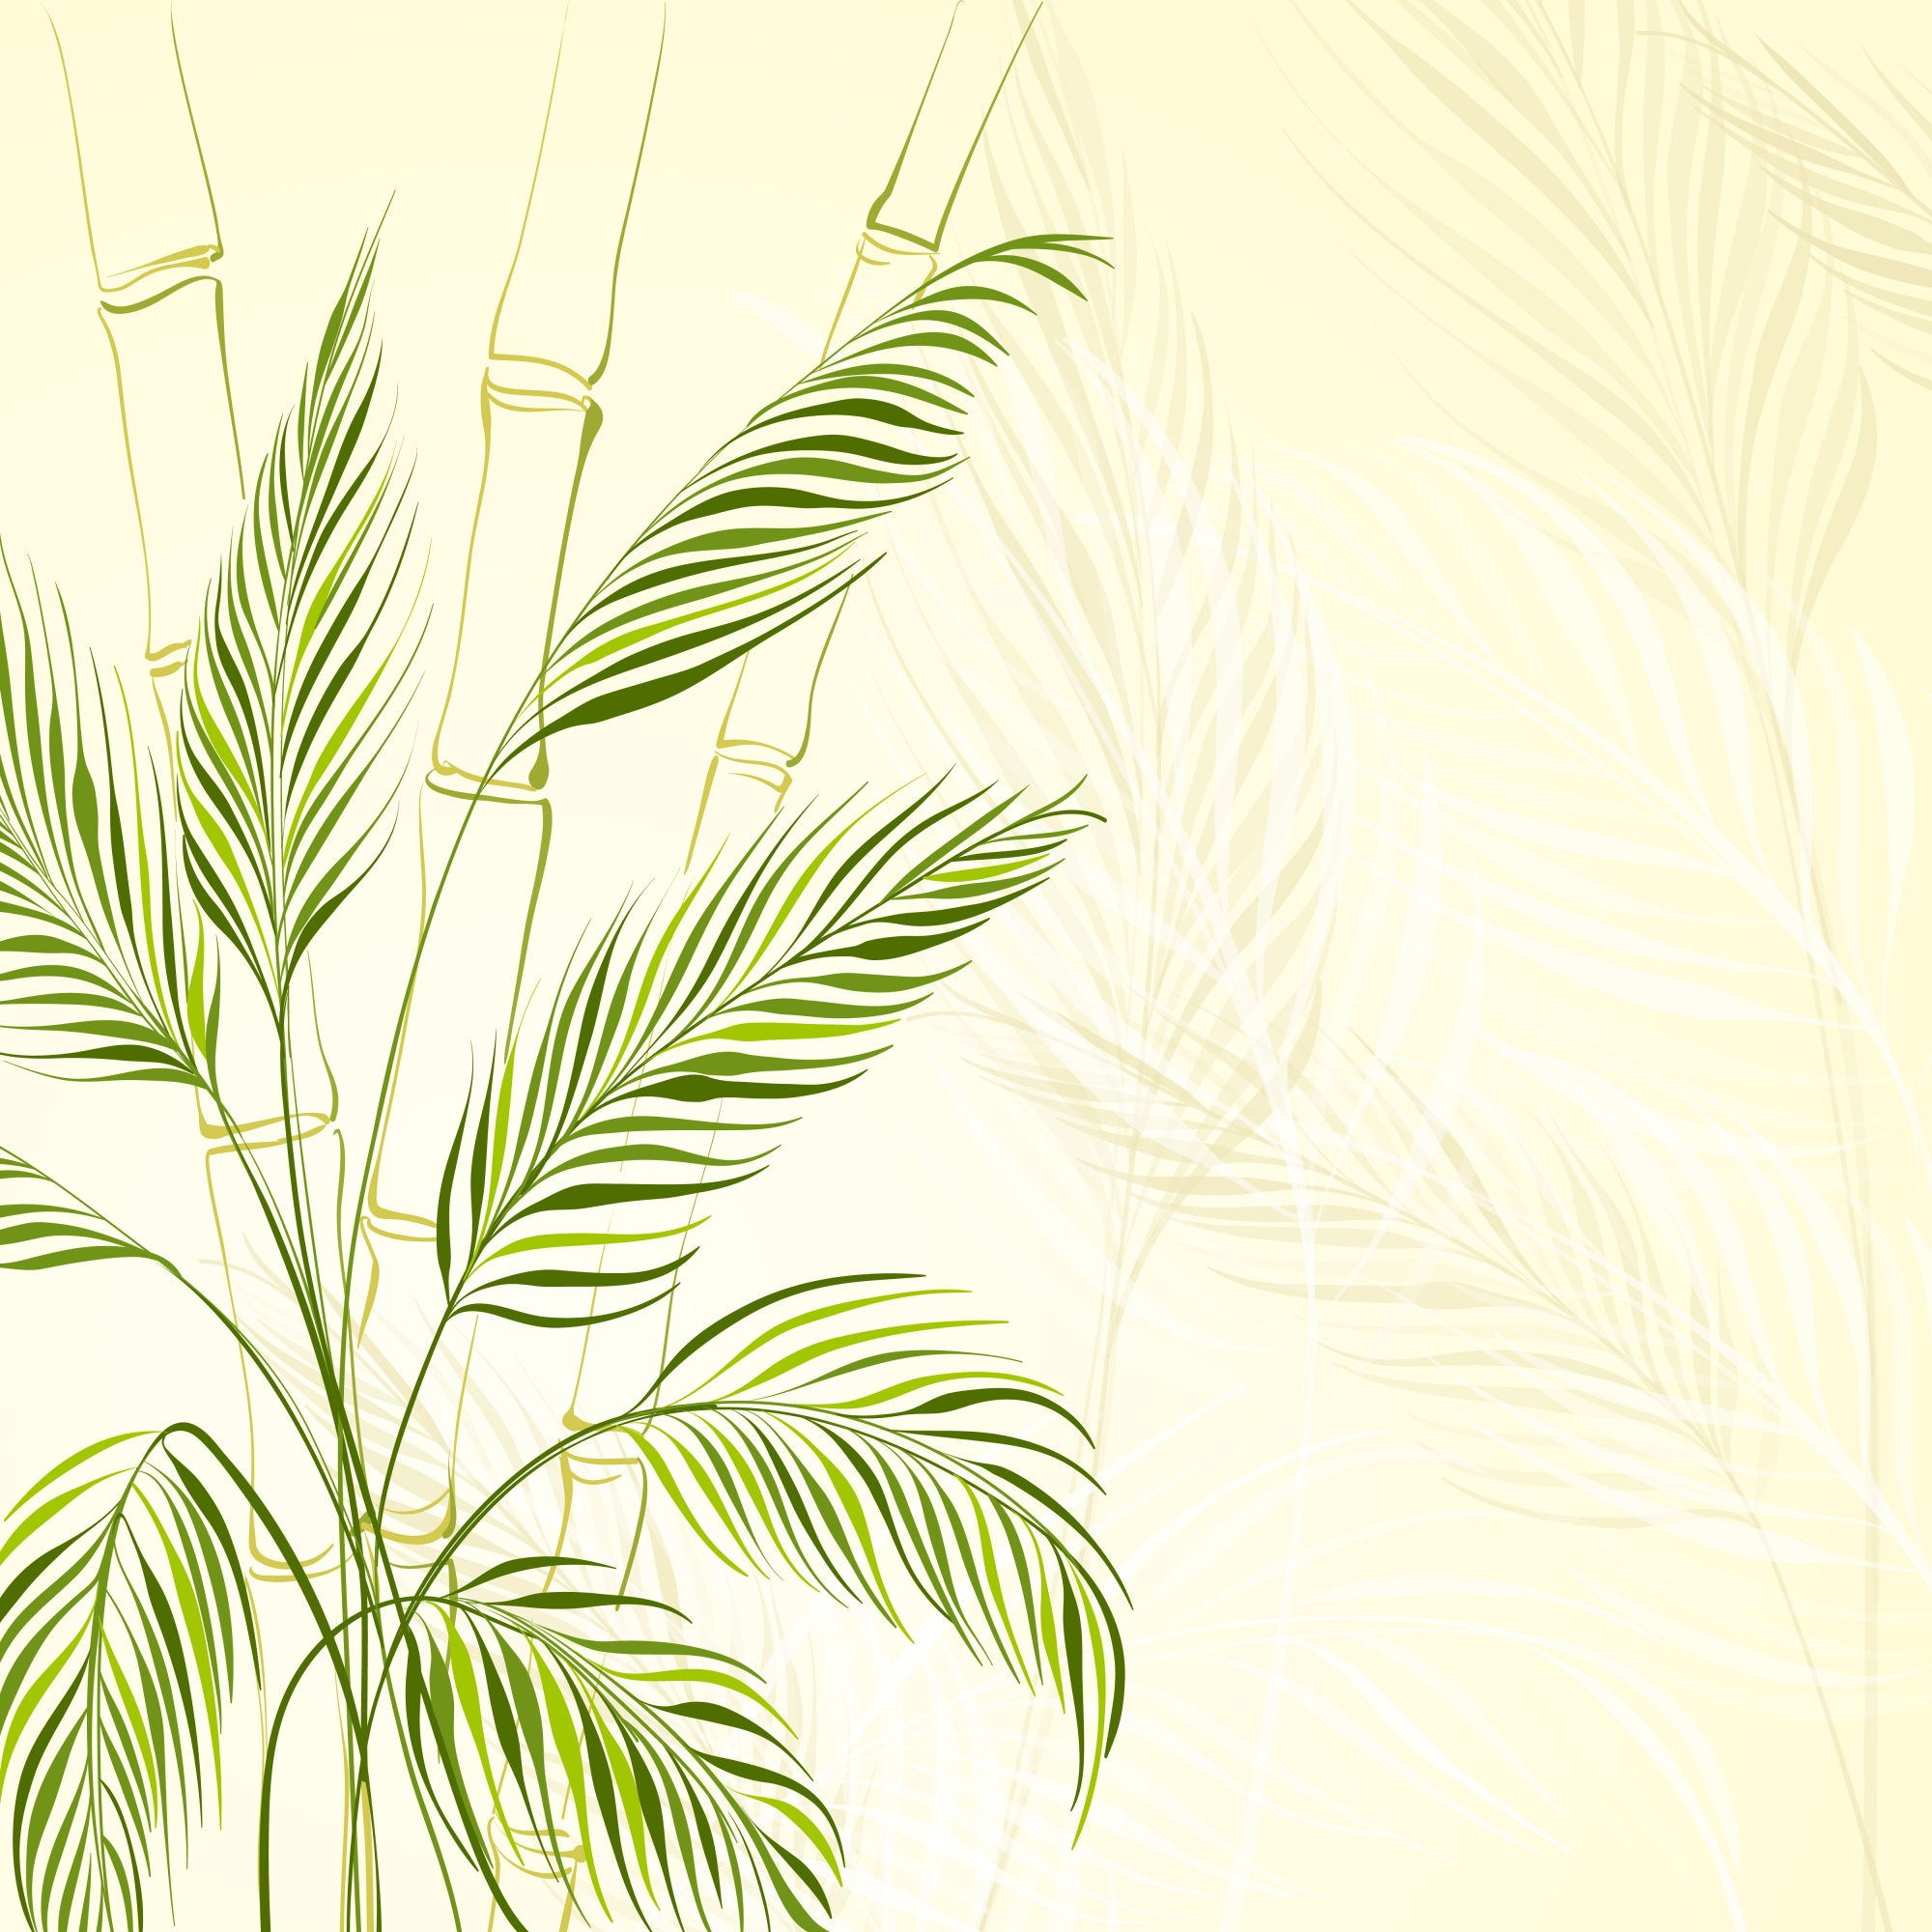 Palm tree over bamboo forest